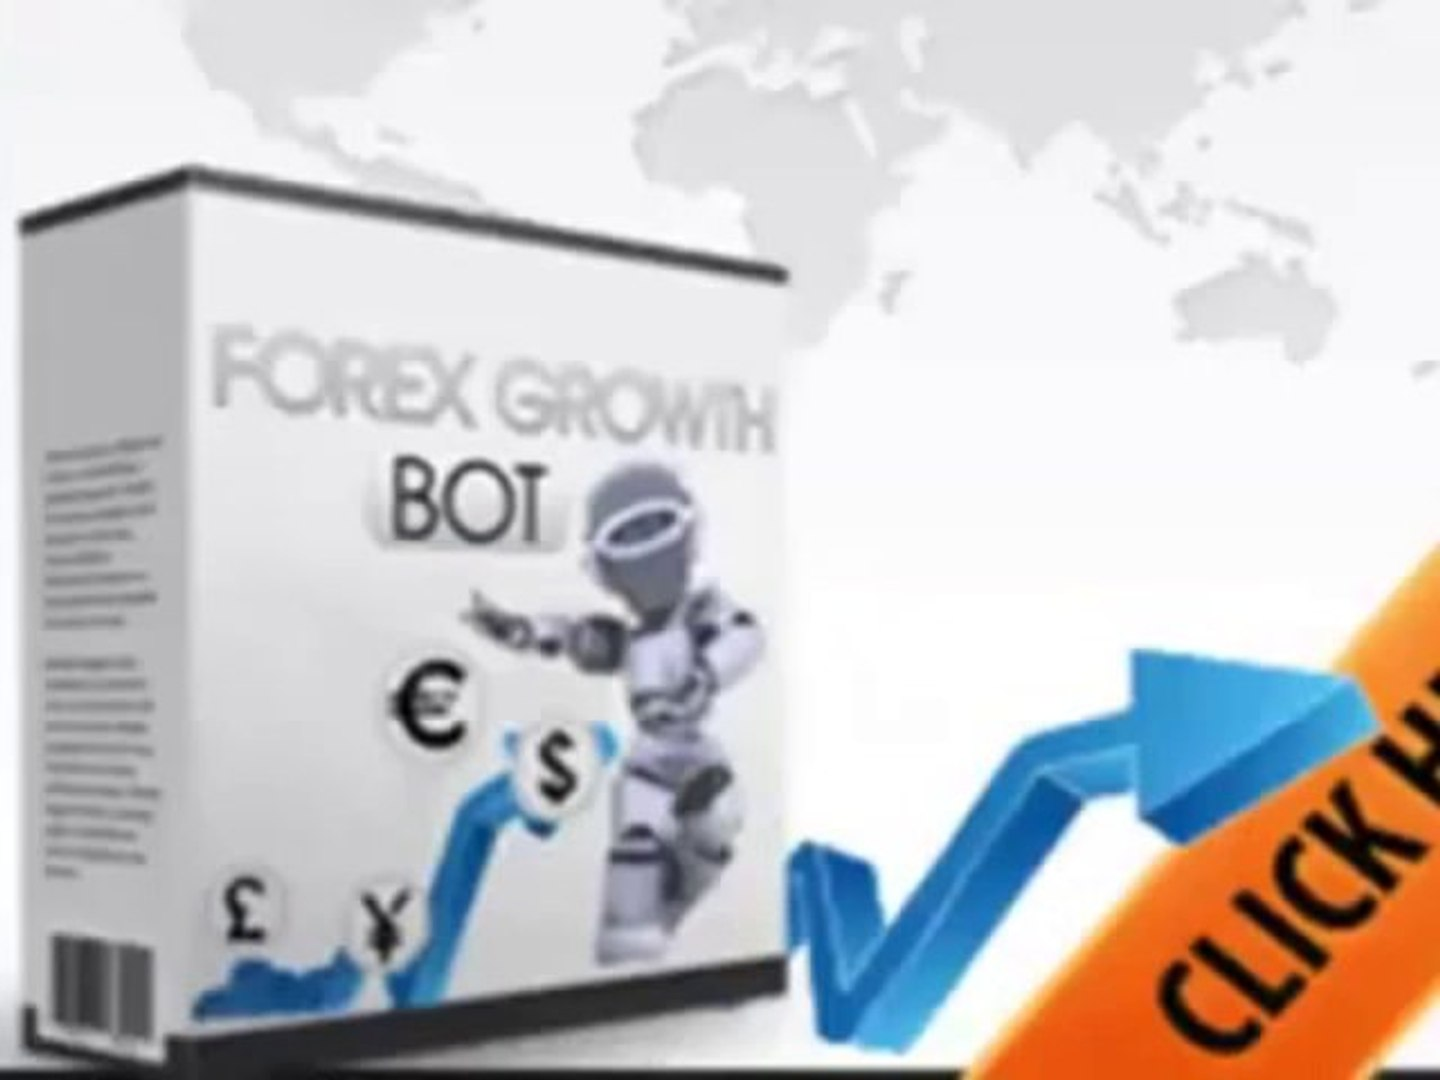 Forex Growth Bot - Low Risk Bot